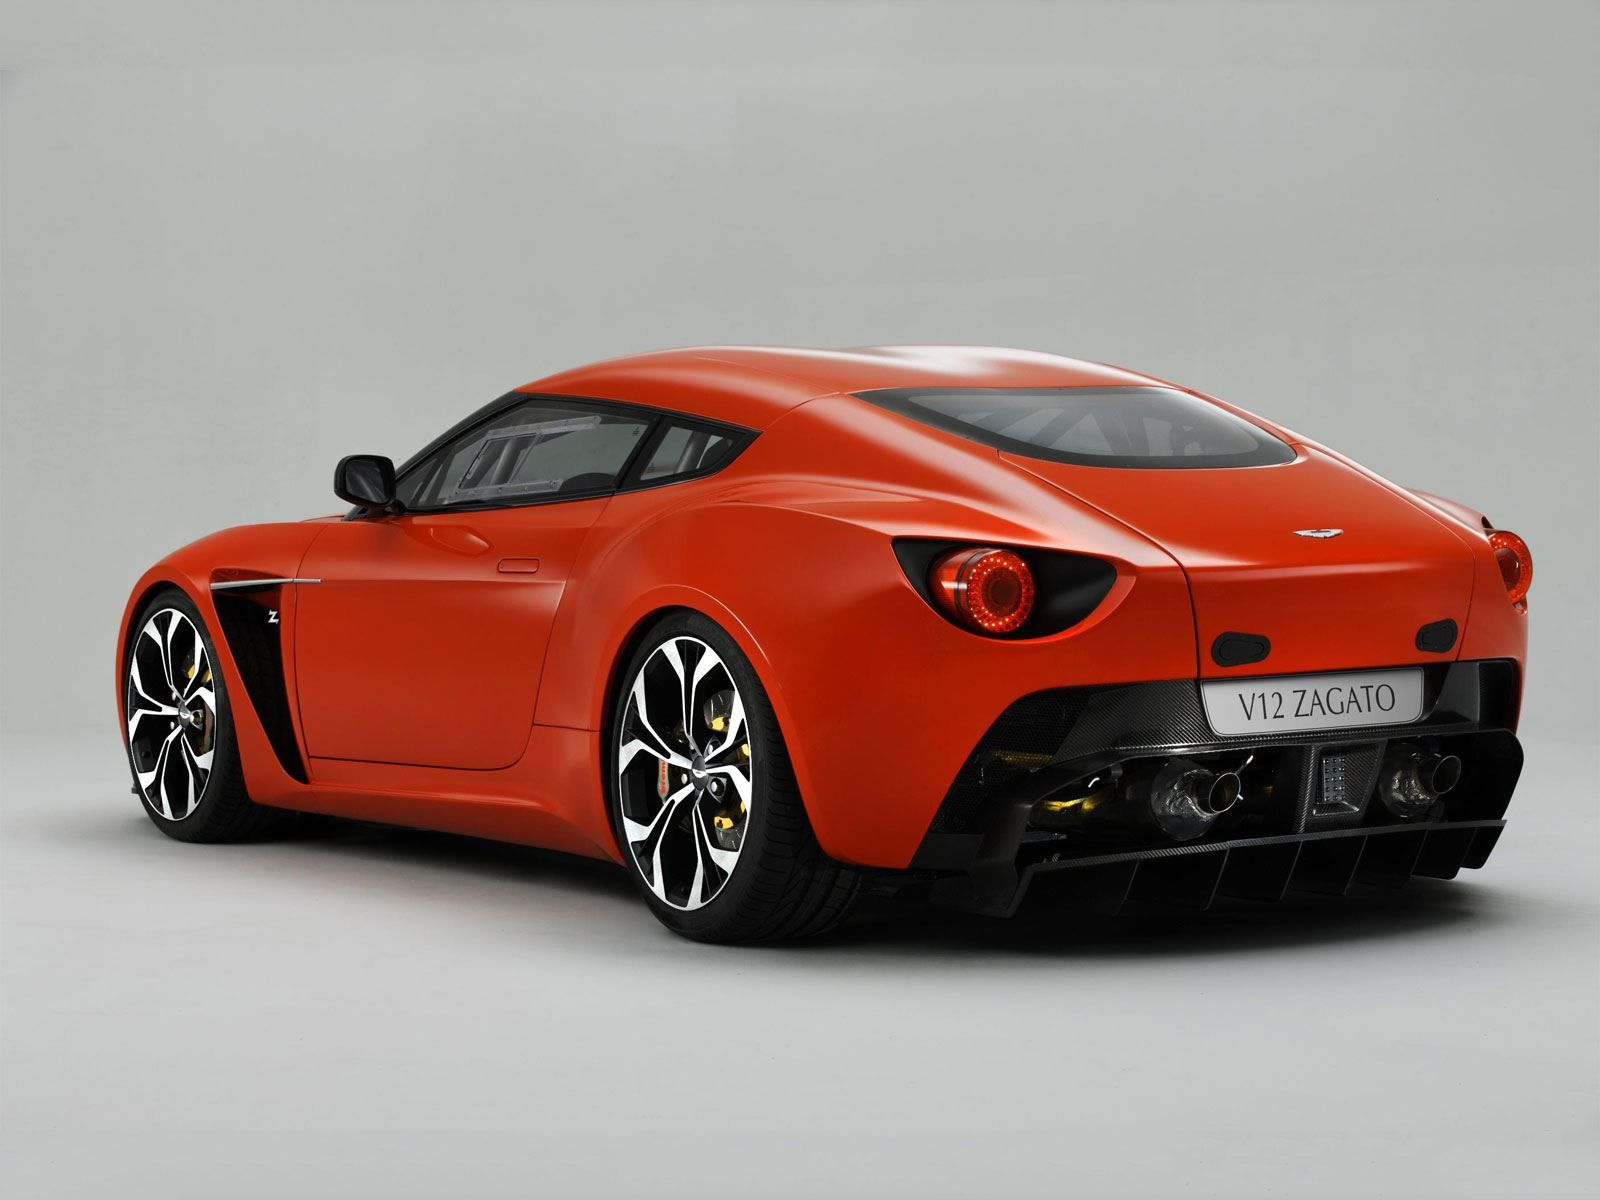 In Pictures The Coolest Aston Martins Ever Aston Martin V12 Aston Martin Aston Martin Vantage